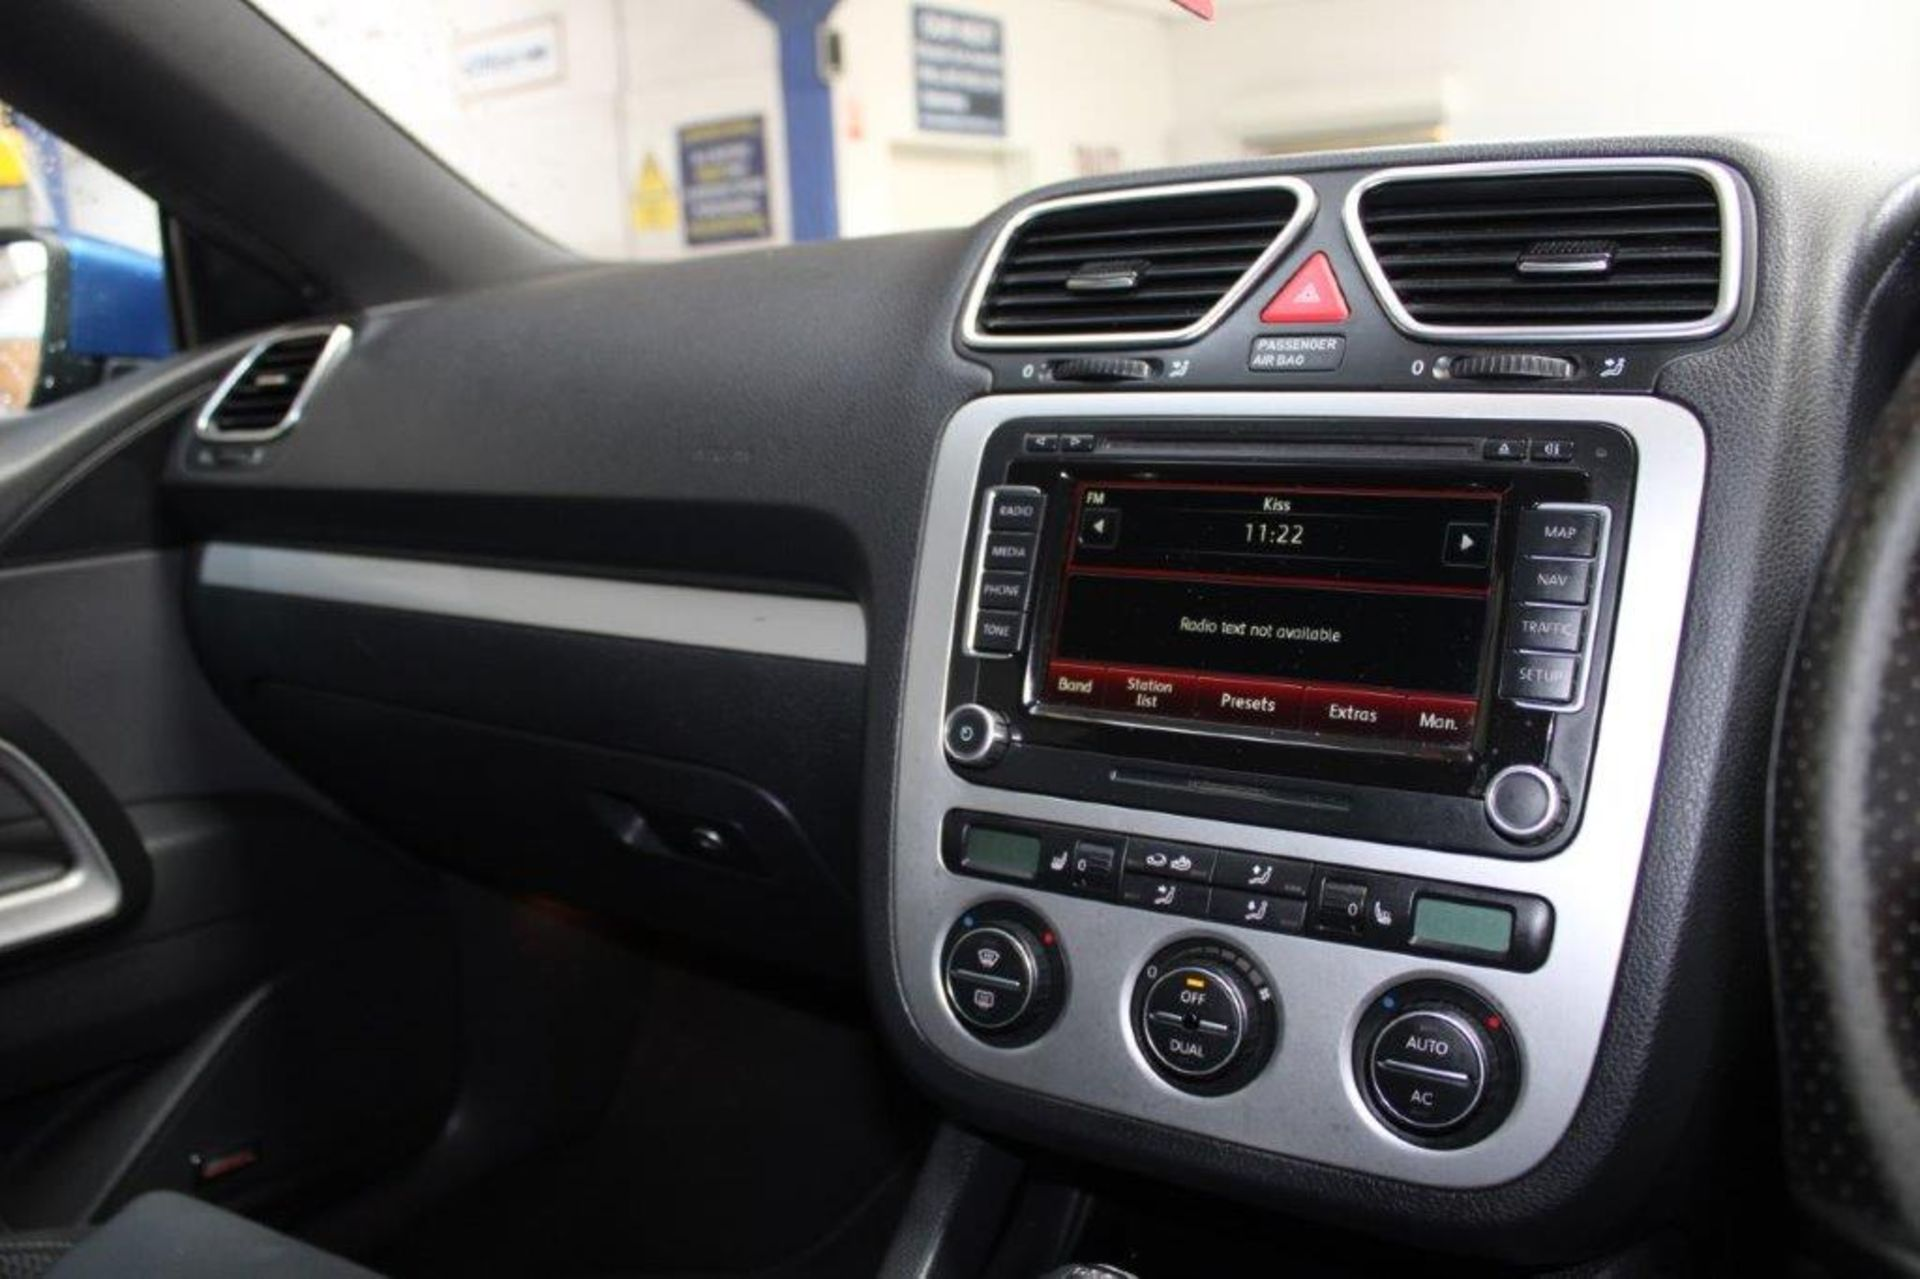 58 08 VW Scirocco GT - Image 6 of 29